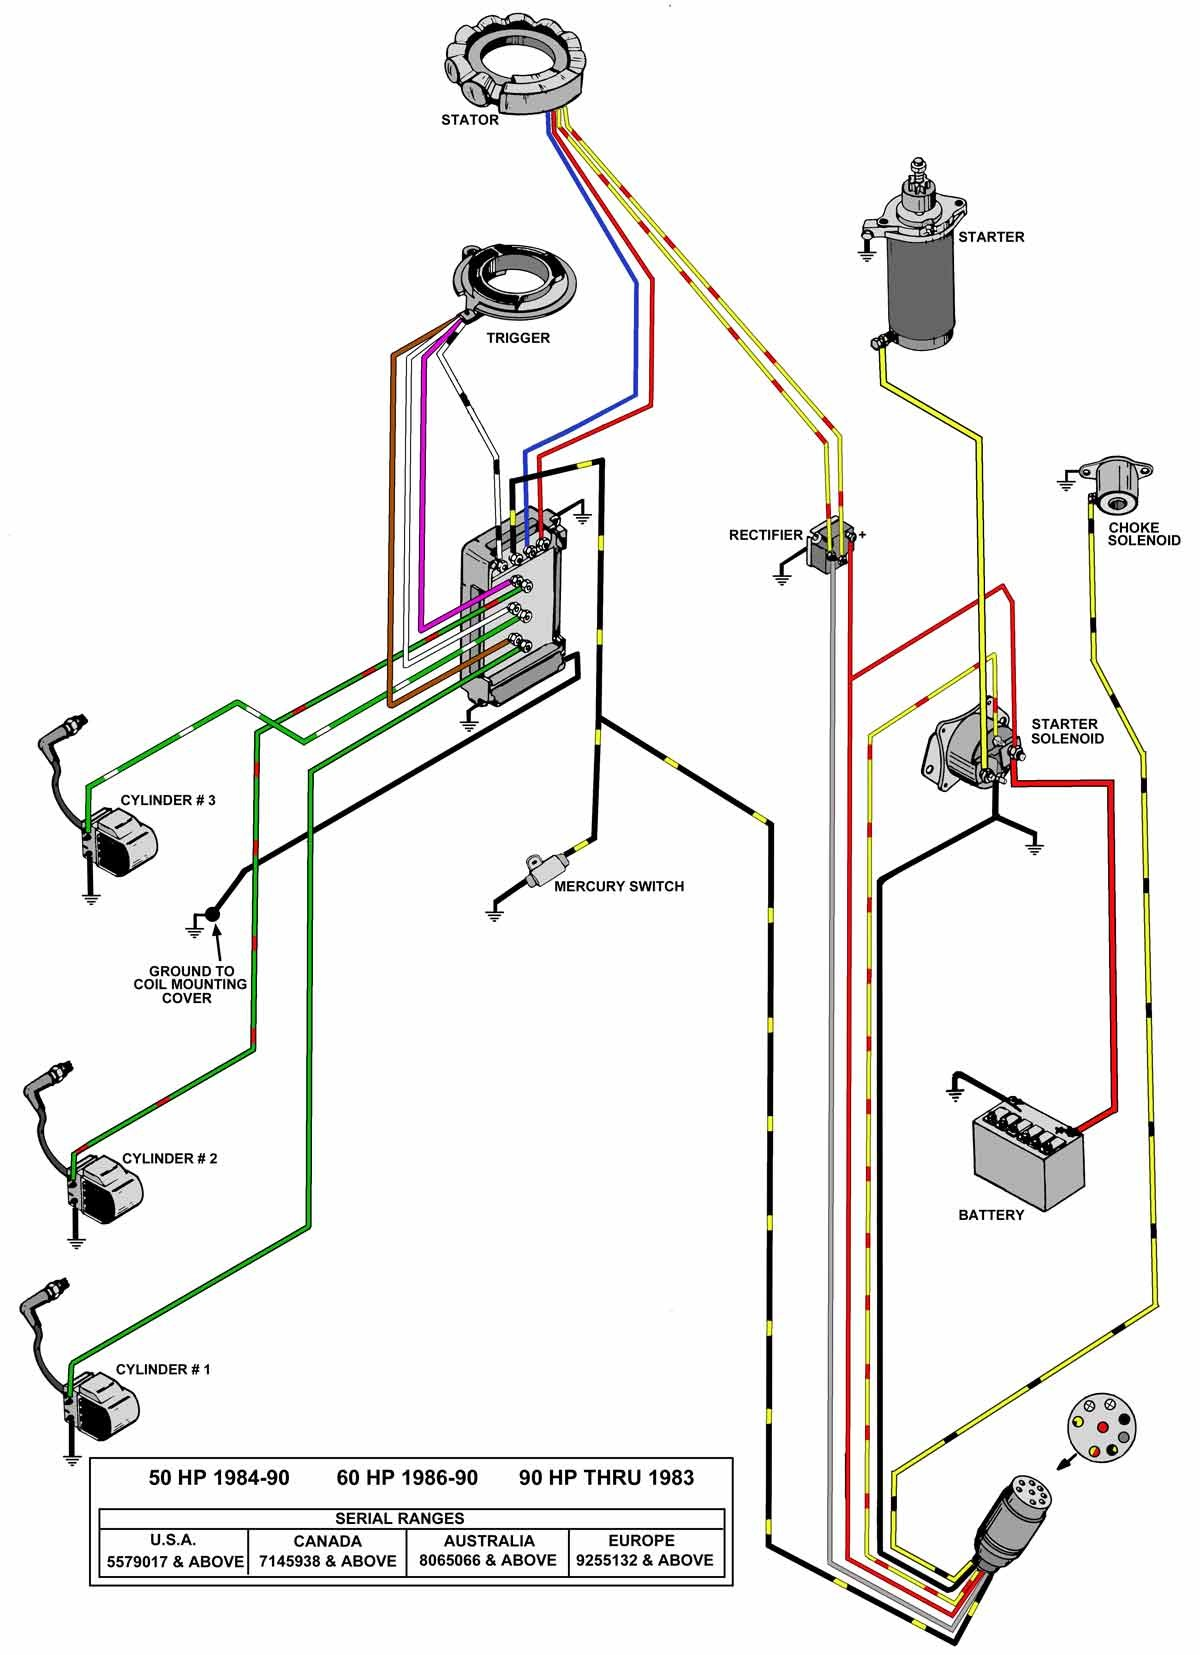 Mercury Outboard Ignition Switch Wiring Diagram Mercury Tachometer Wiring Diagram Wiring Diagram Of Mercury Outboard Ignition Switch Wiring Diagram